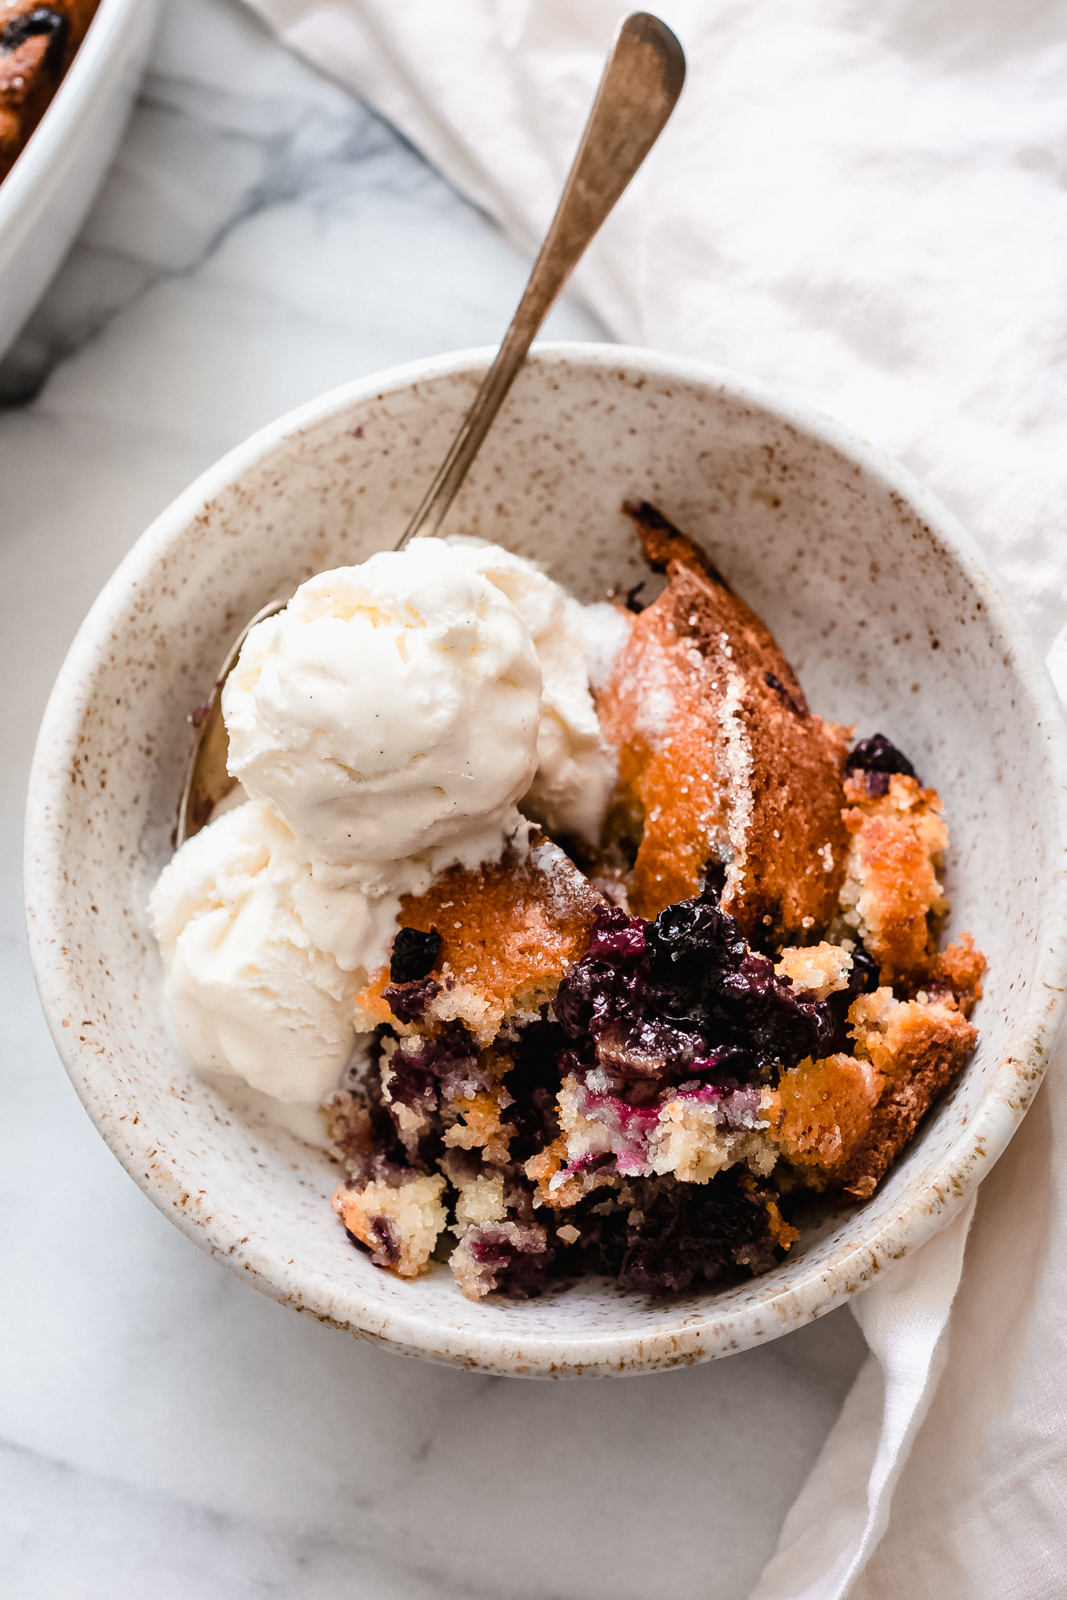 bowl with crumbled conbbler with melting vanilla ice cream and spoon